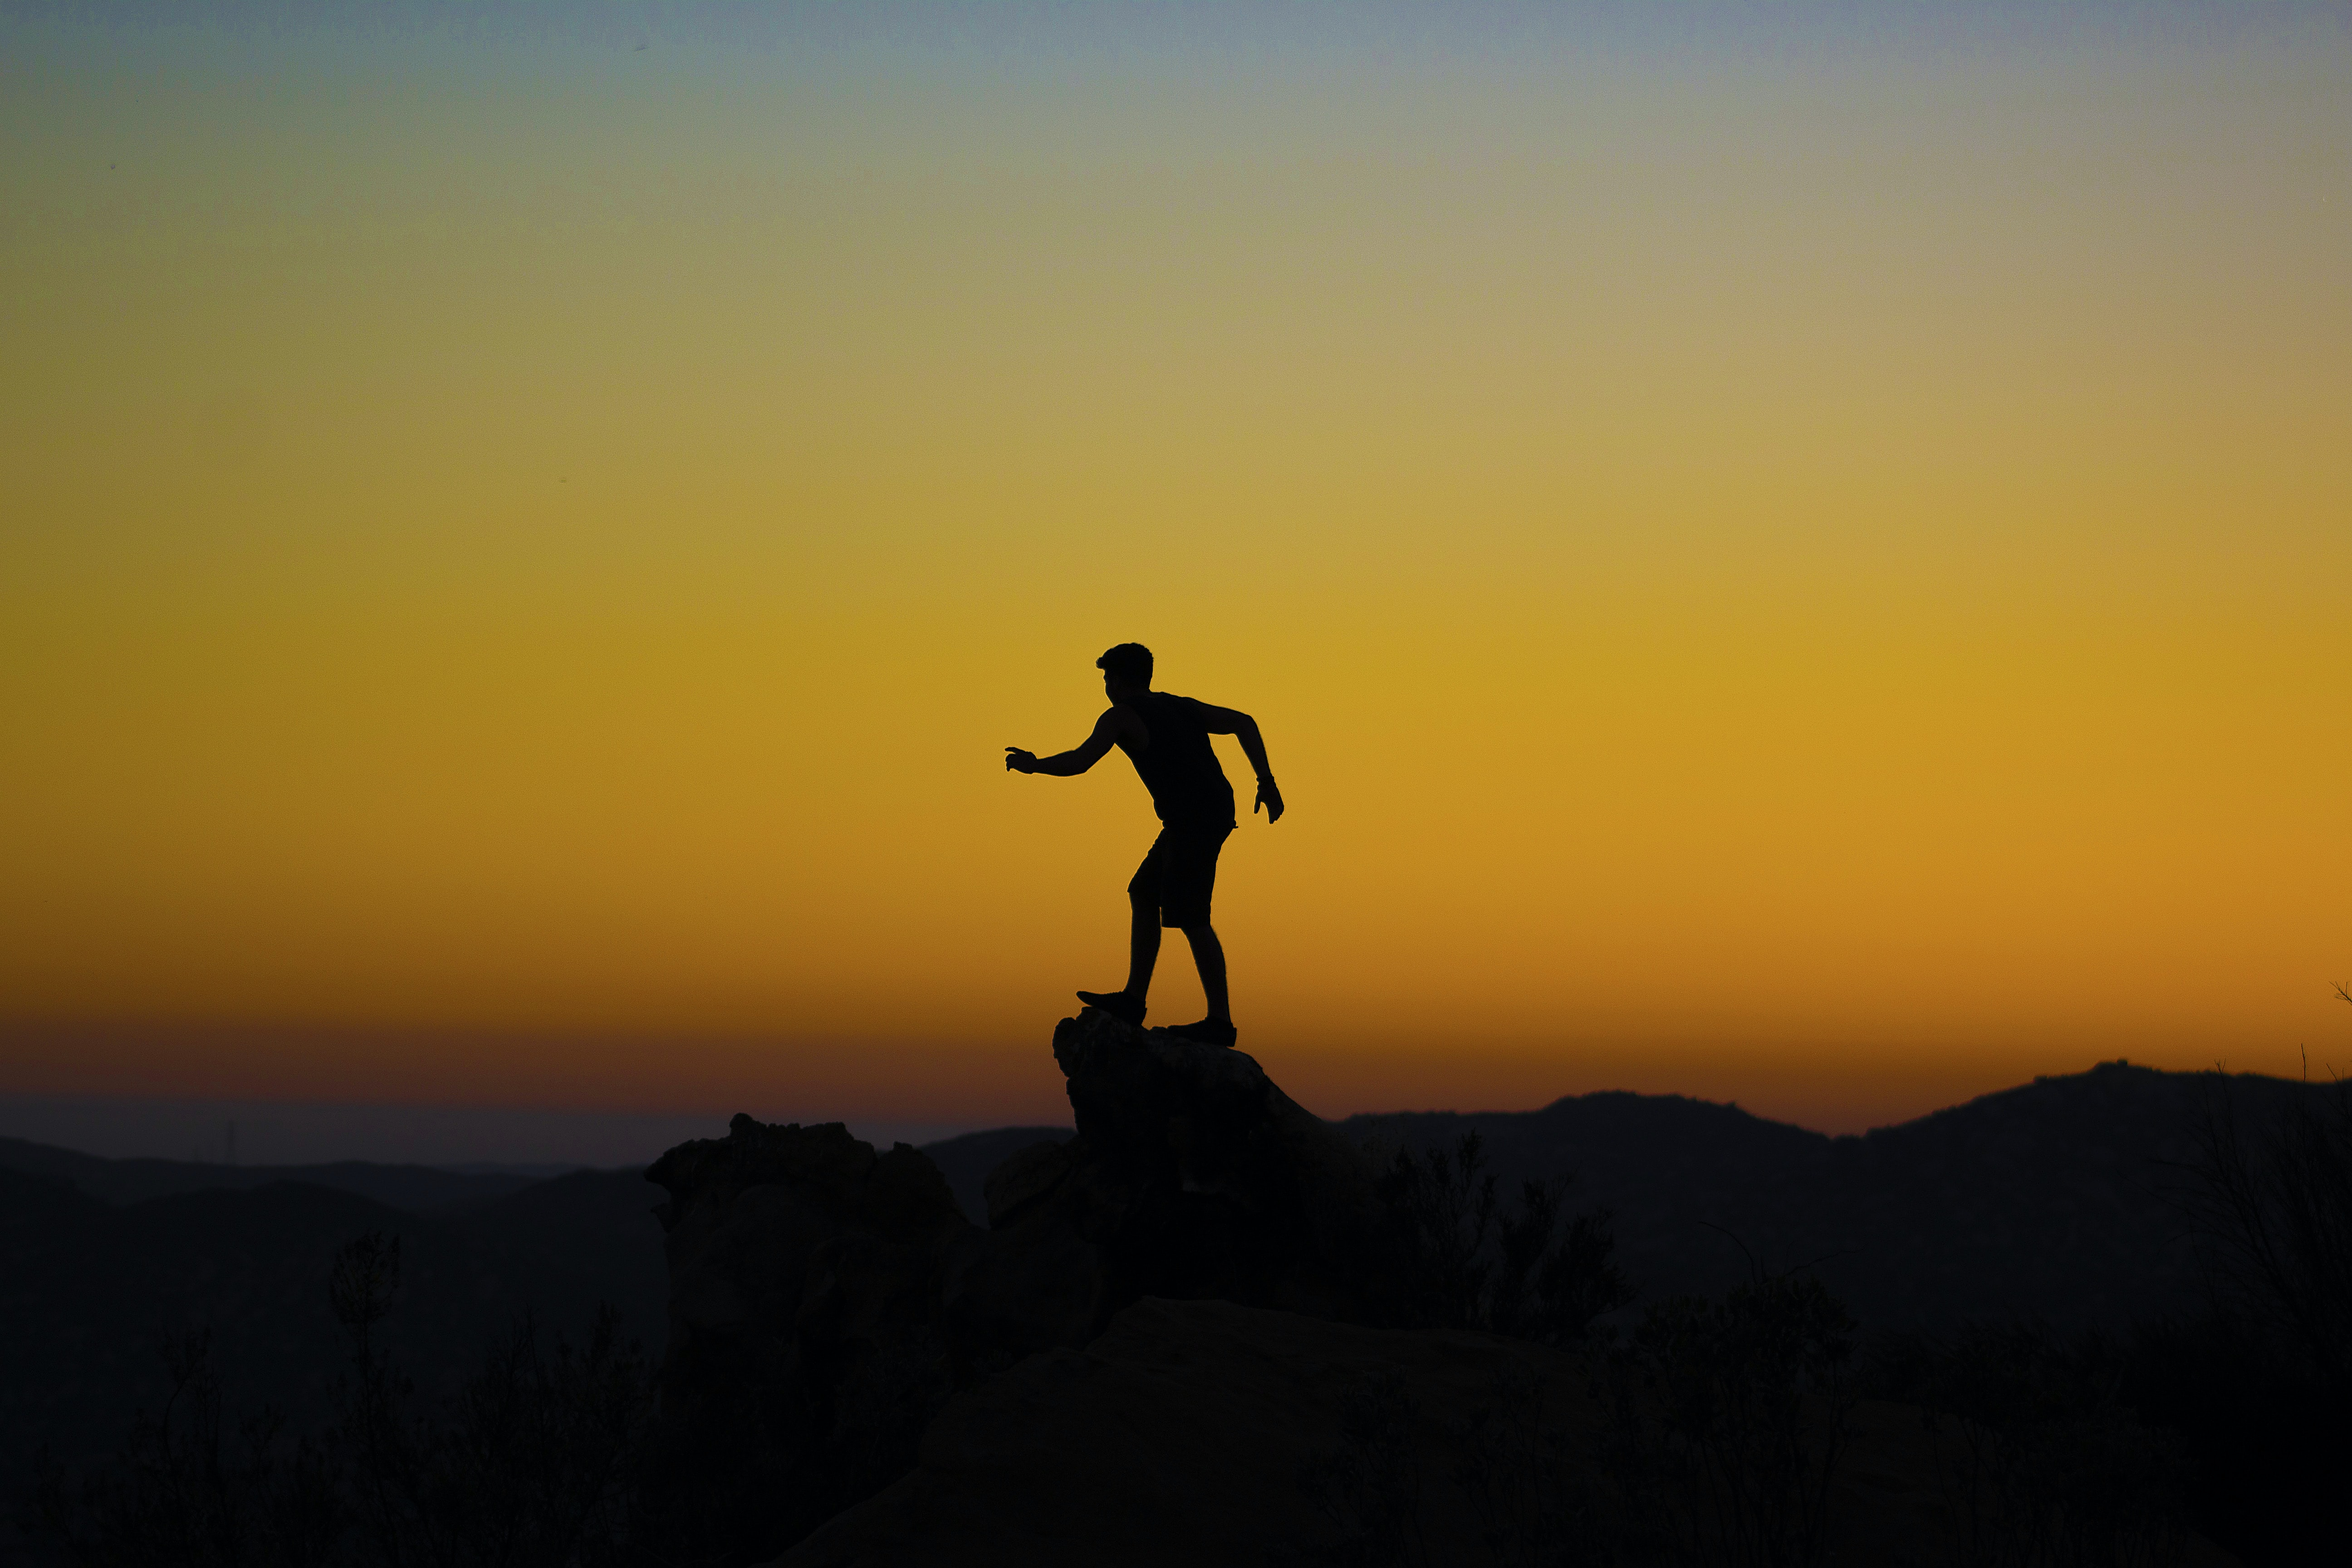 silhouette photo of person on mountain cliff